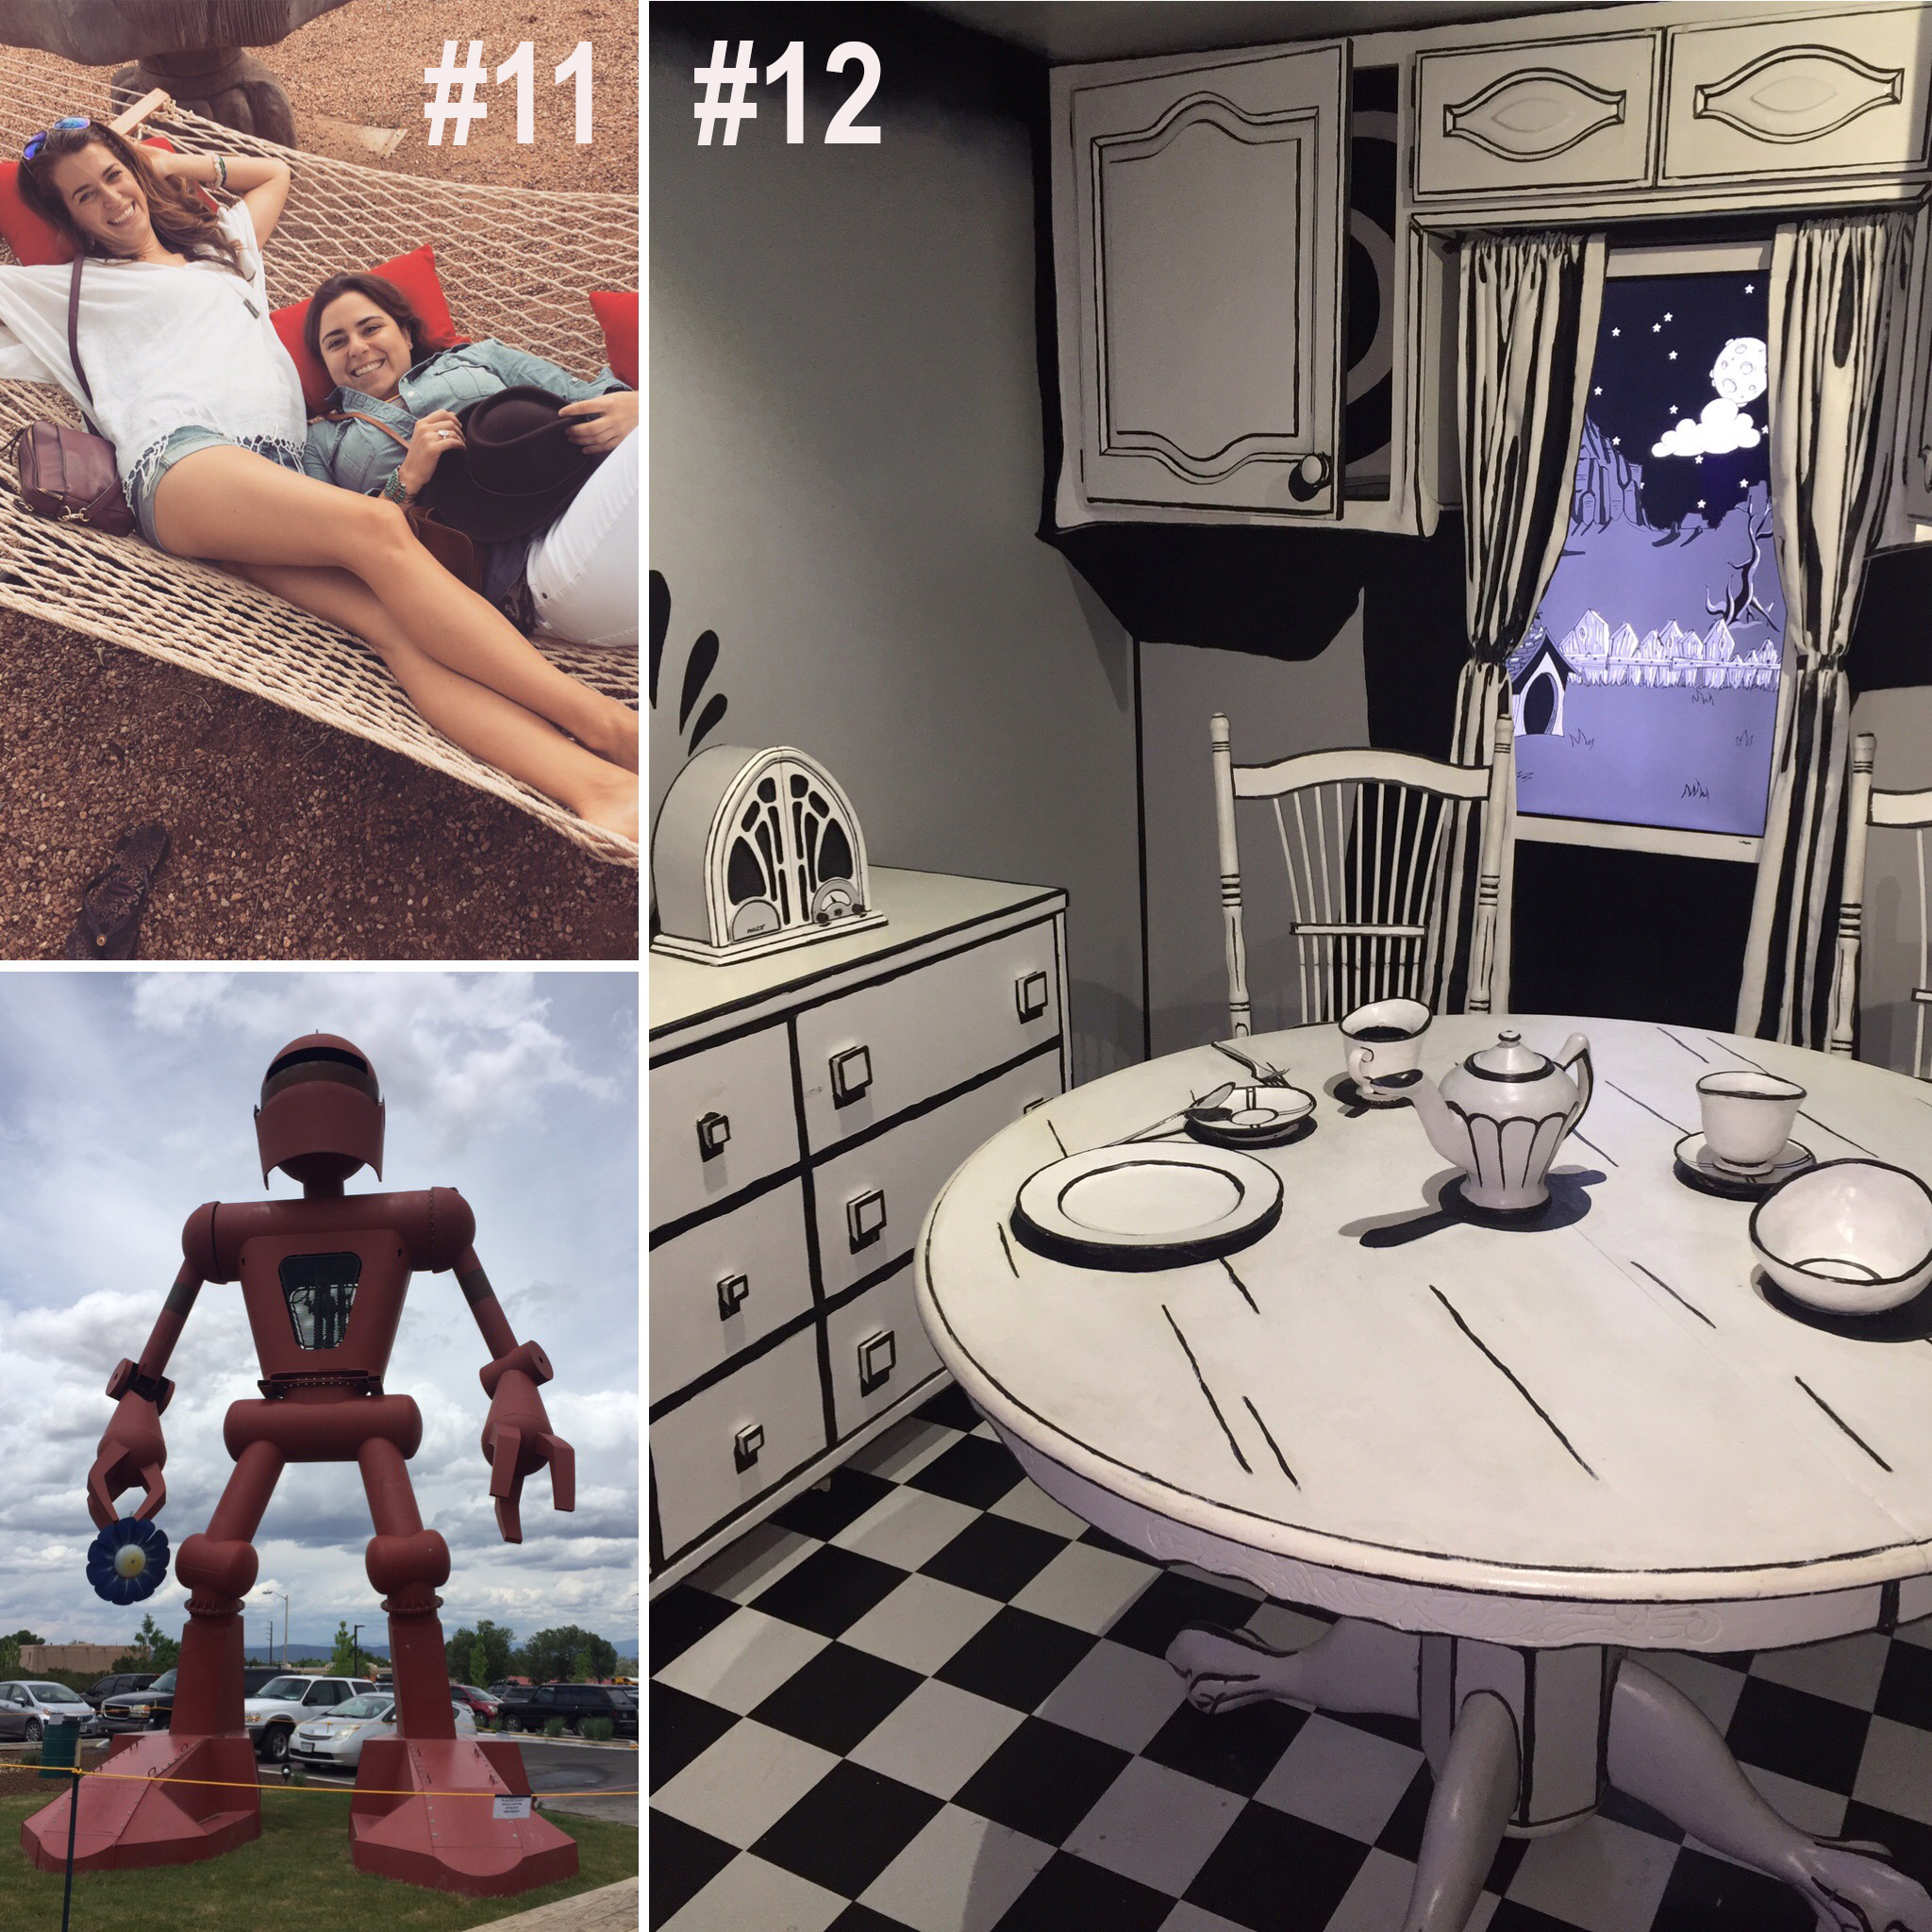 """#11. MY art school FRIEND DIANA AND I STAYED AT """"THE INN OF THE TURQUOISE BEAR"""" IN  SANTA FE, New mexico .  #12. THEN WE WENT TO A HUGE INSTALLATION ART PIECE CALLED """"meow wolf"""""""